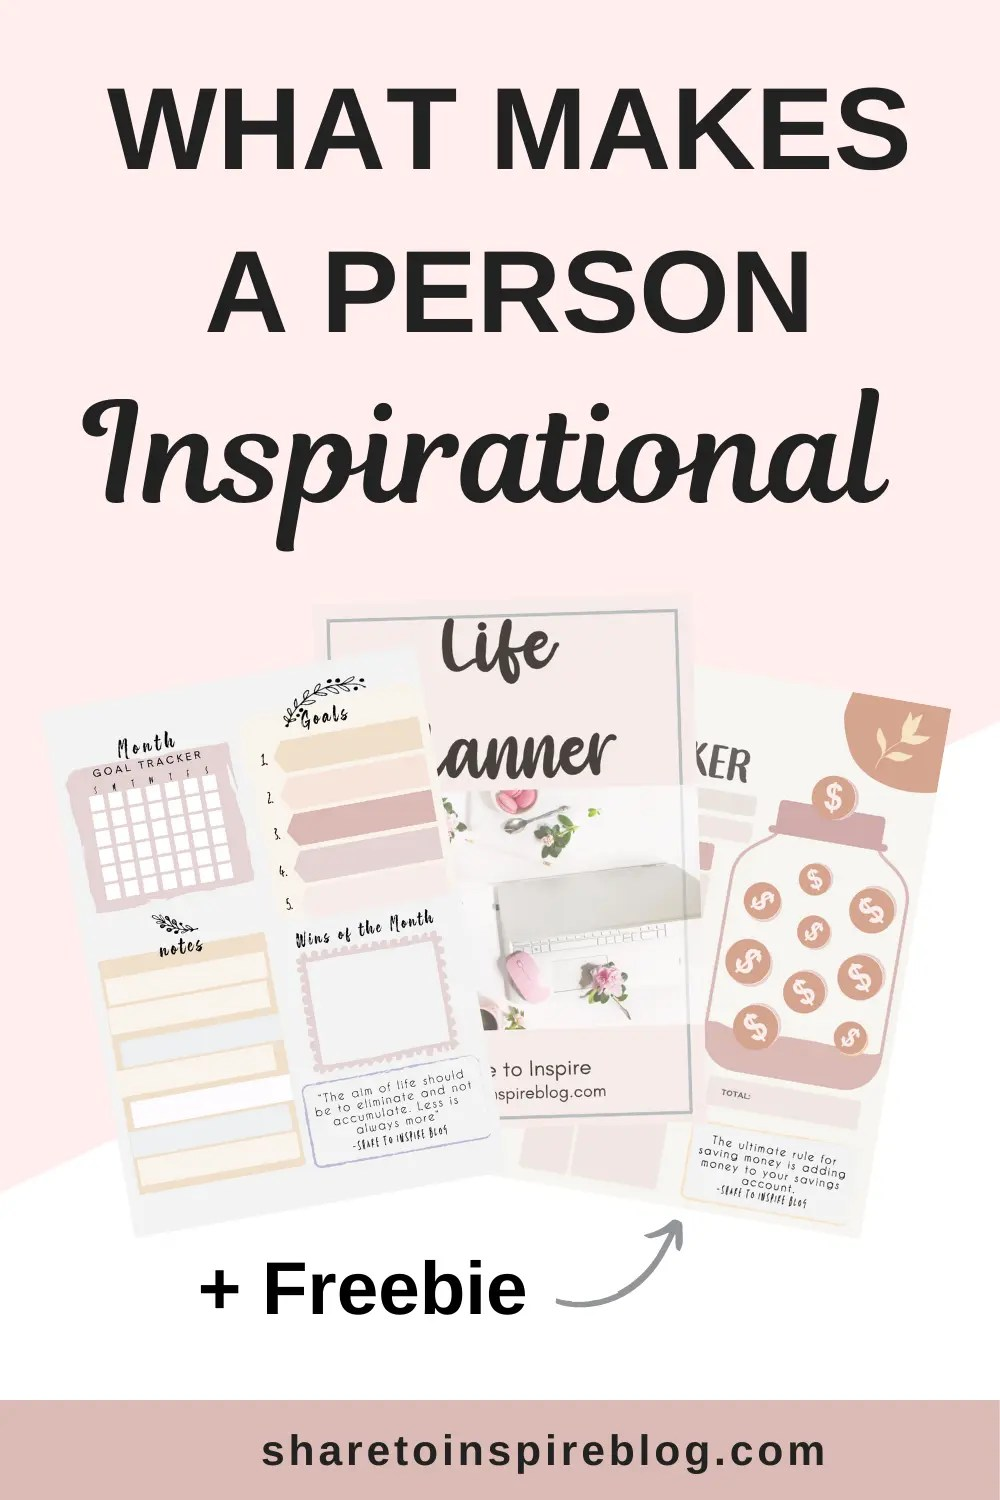 30 qualities of inspirational people Pinterest pin